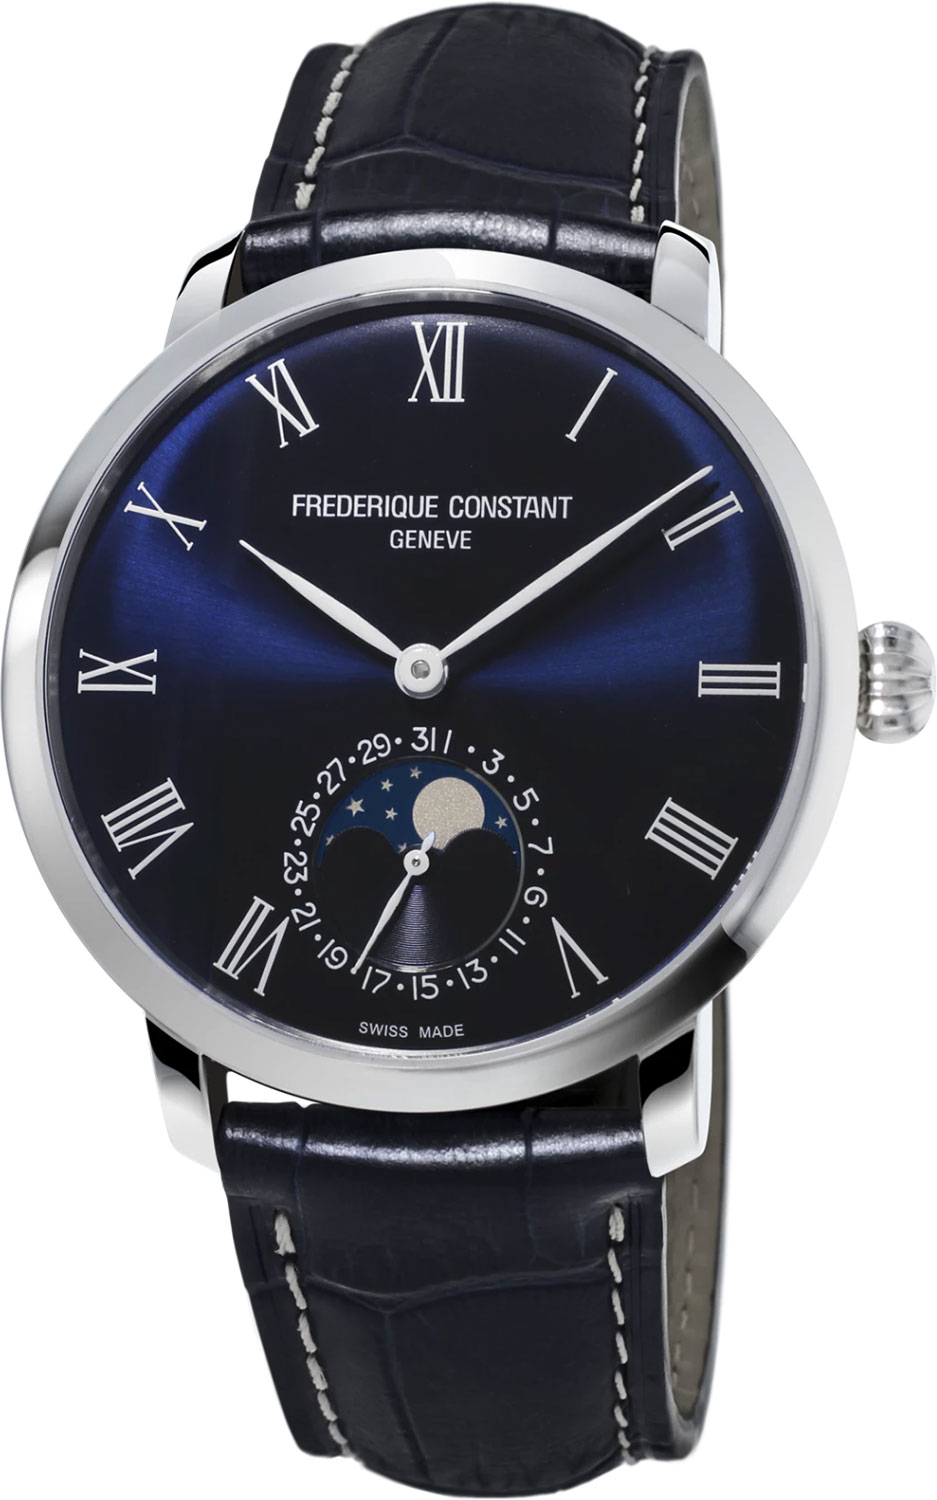 Фото - Мужские часы Frederique Constant FC-705NR4S6 meike fc 100 for nikon canon fc 100 macro ring flash light nikon d7100 d7000 d5200 d5100 d5000 d3200 d310